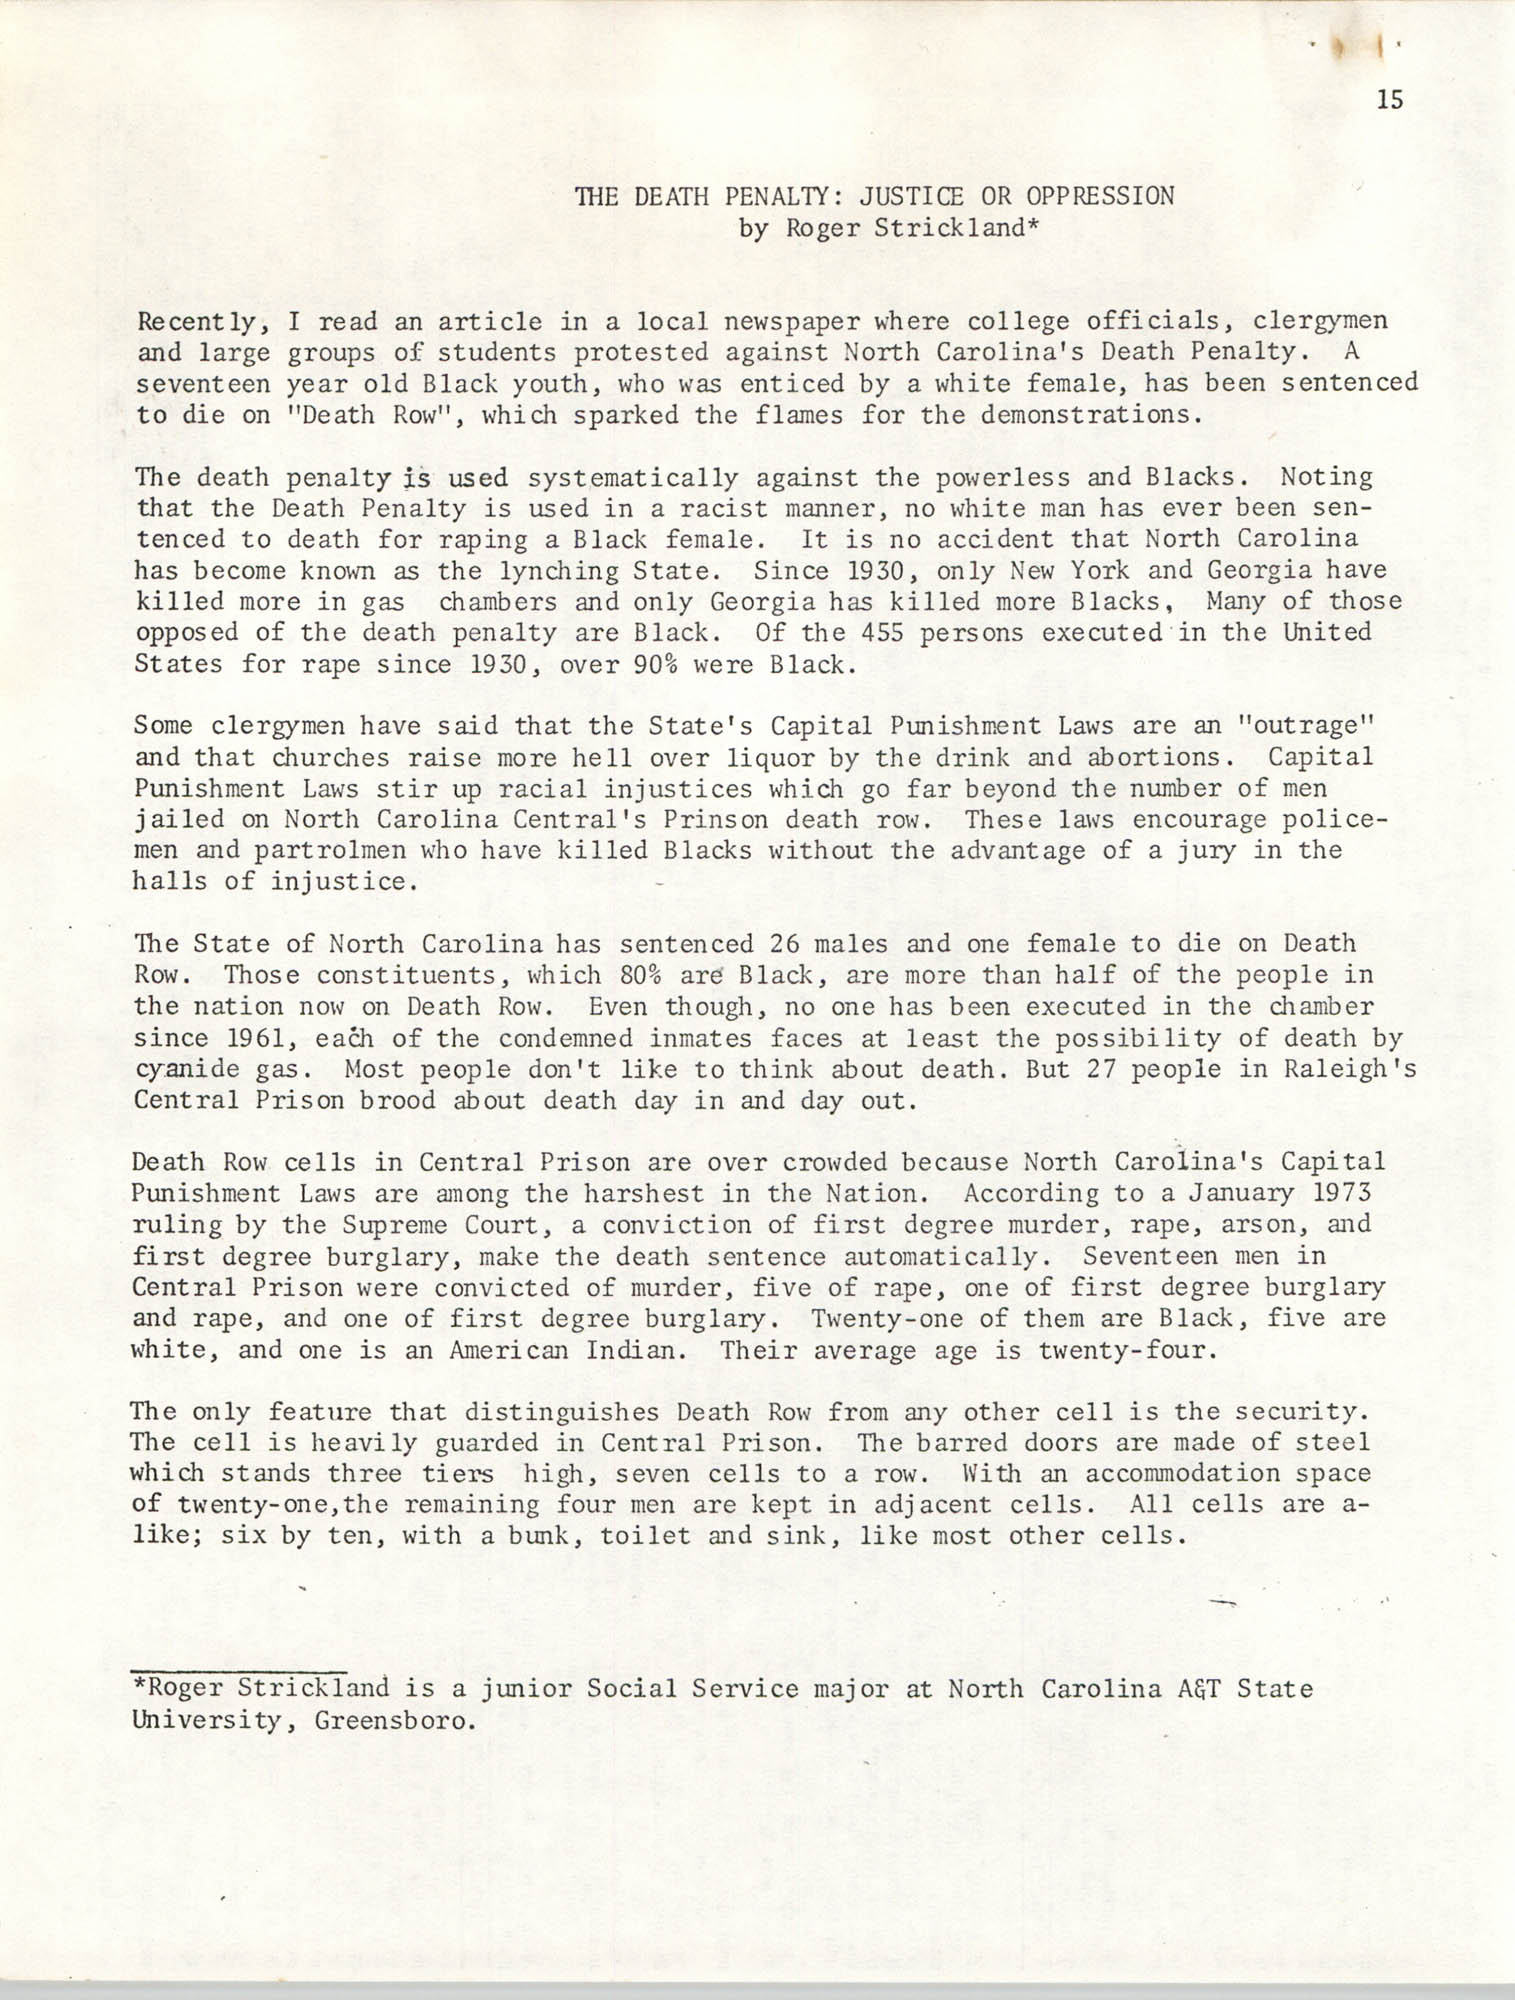 SHARE, Volume II, Number 3, March 1974, Page 15